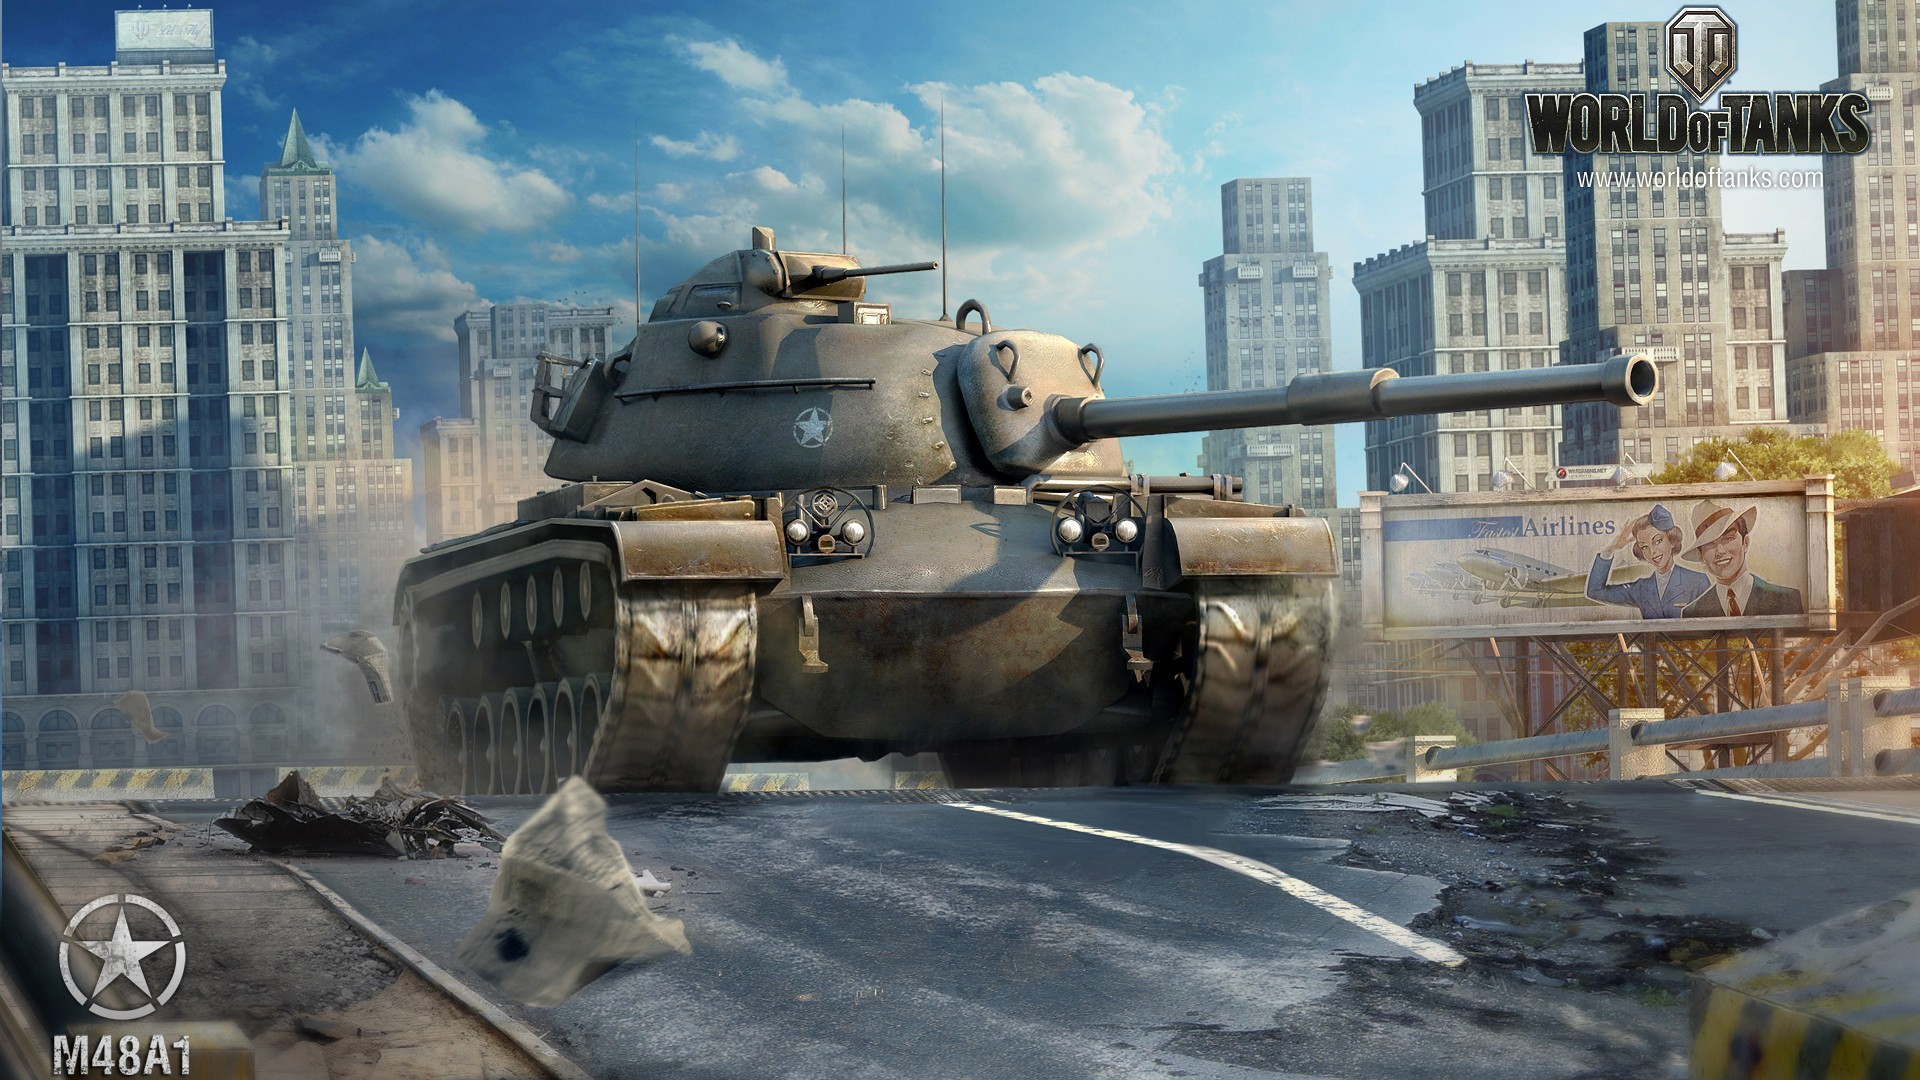 World Of Tanks HD Wallpapers 2015 - All HD Wallpapers